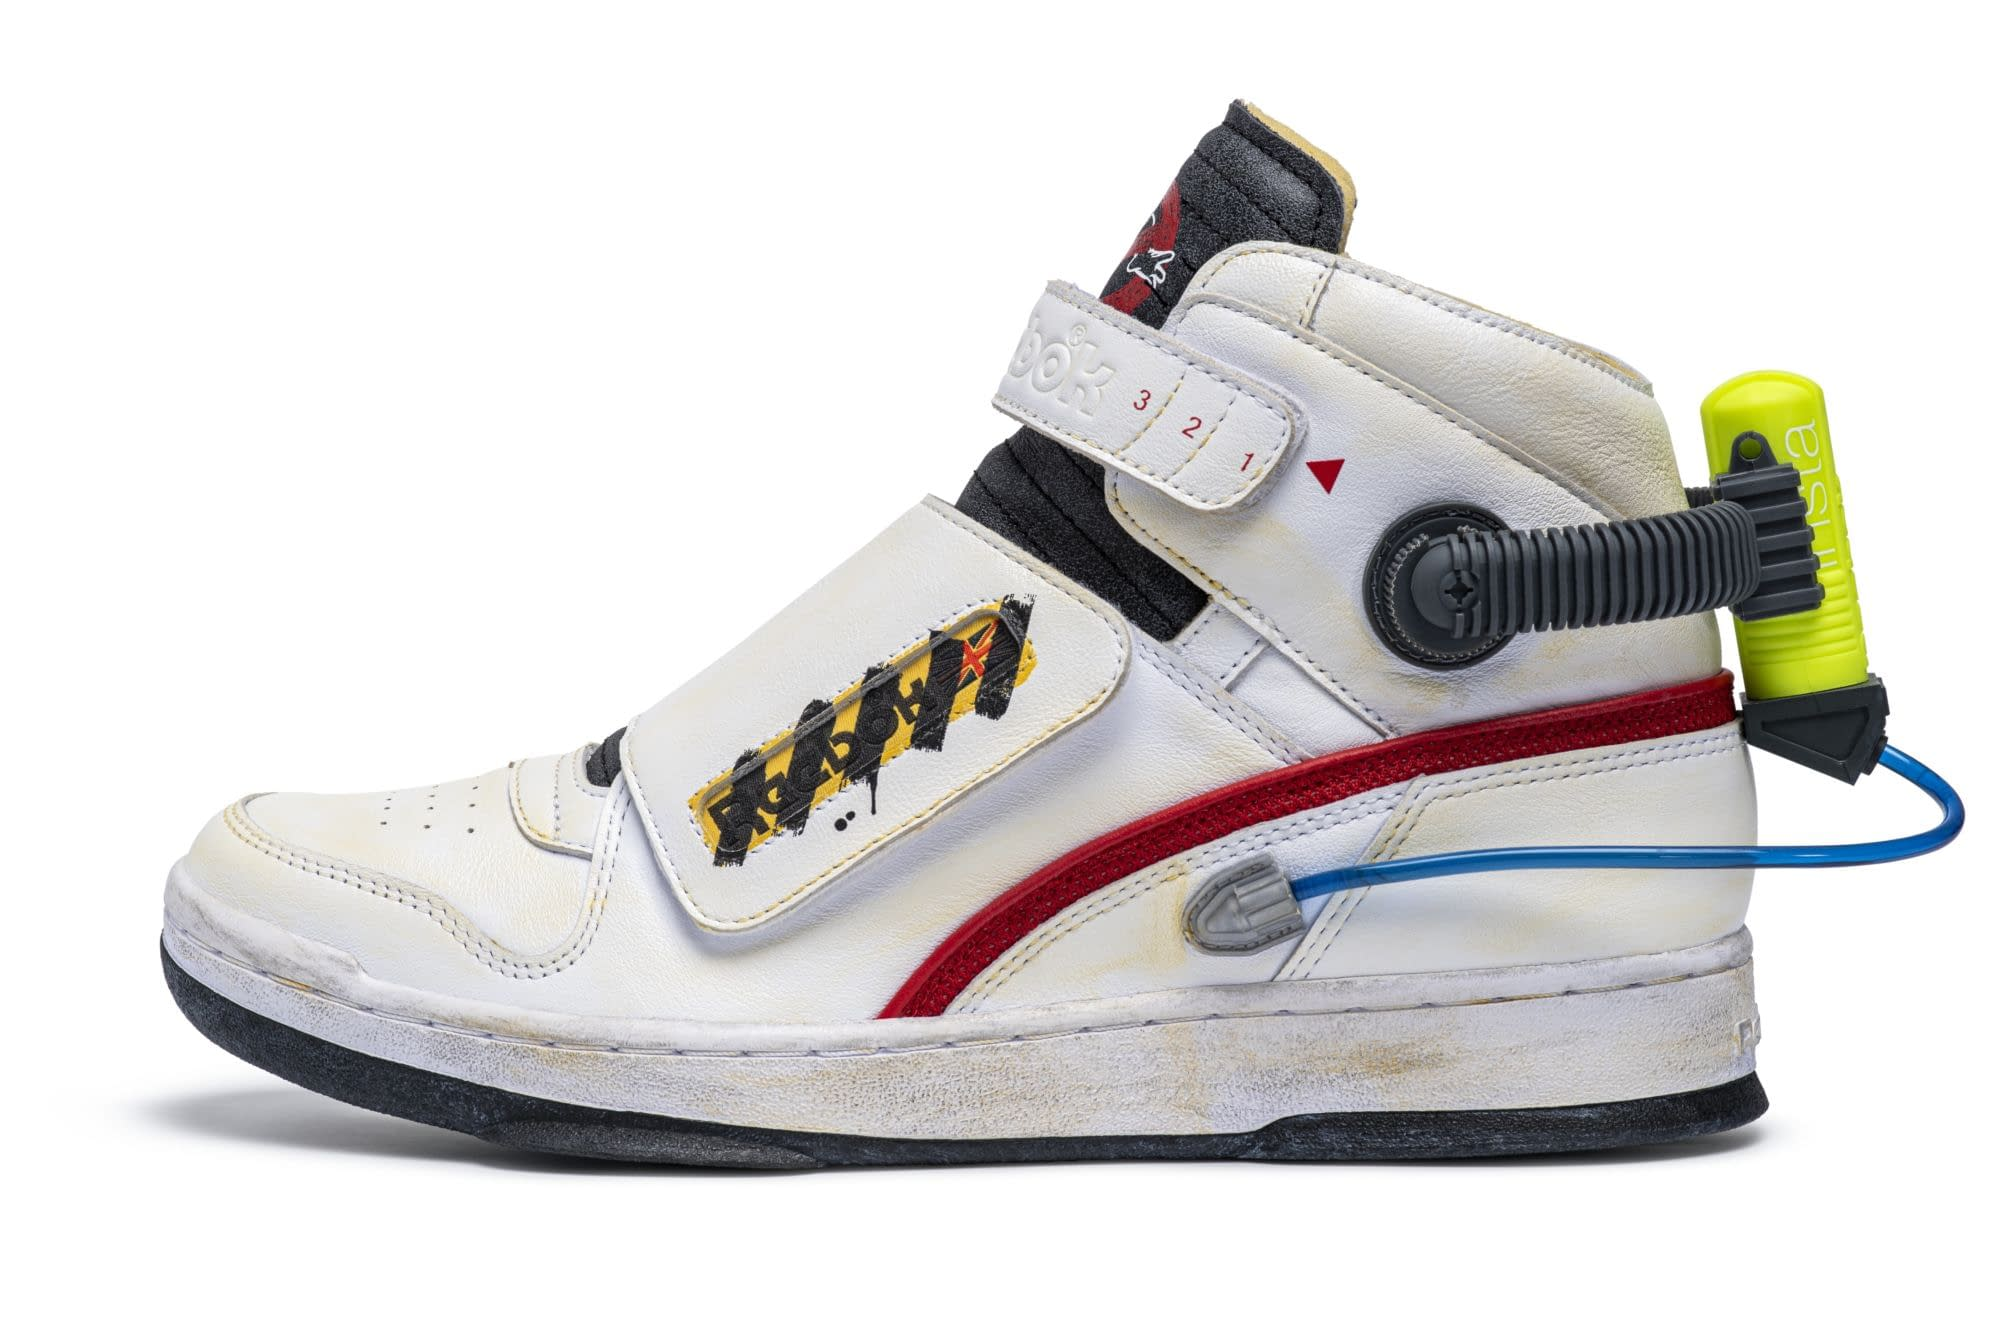 Ghostbusters & Reebok Team-Up For Coolest Shoes Of The Year